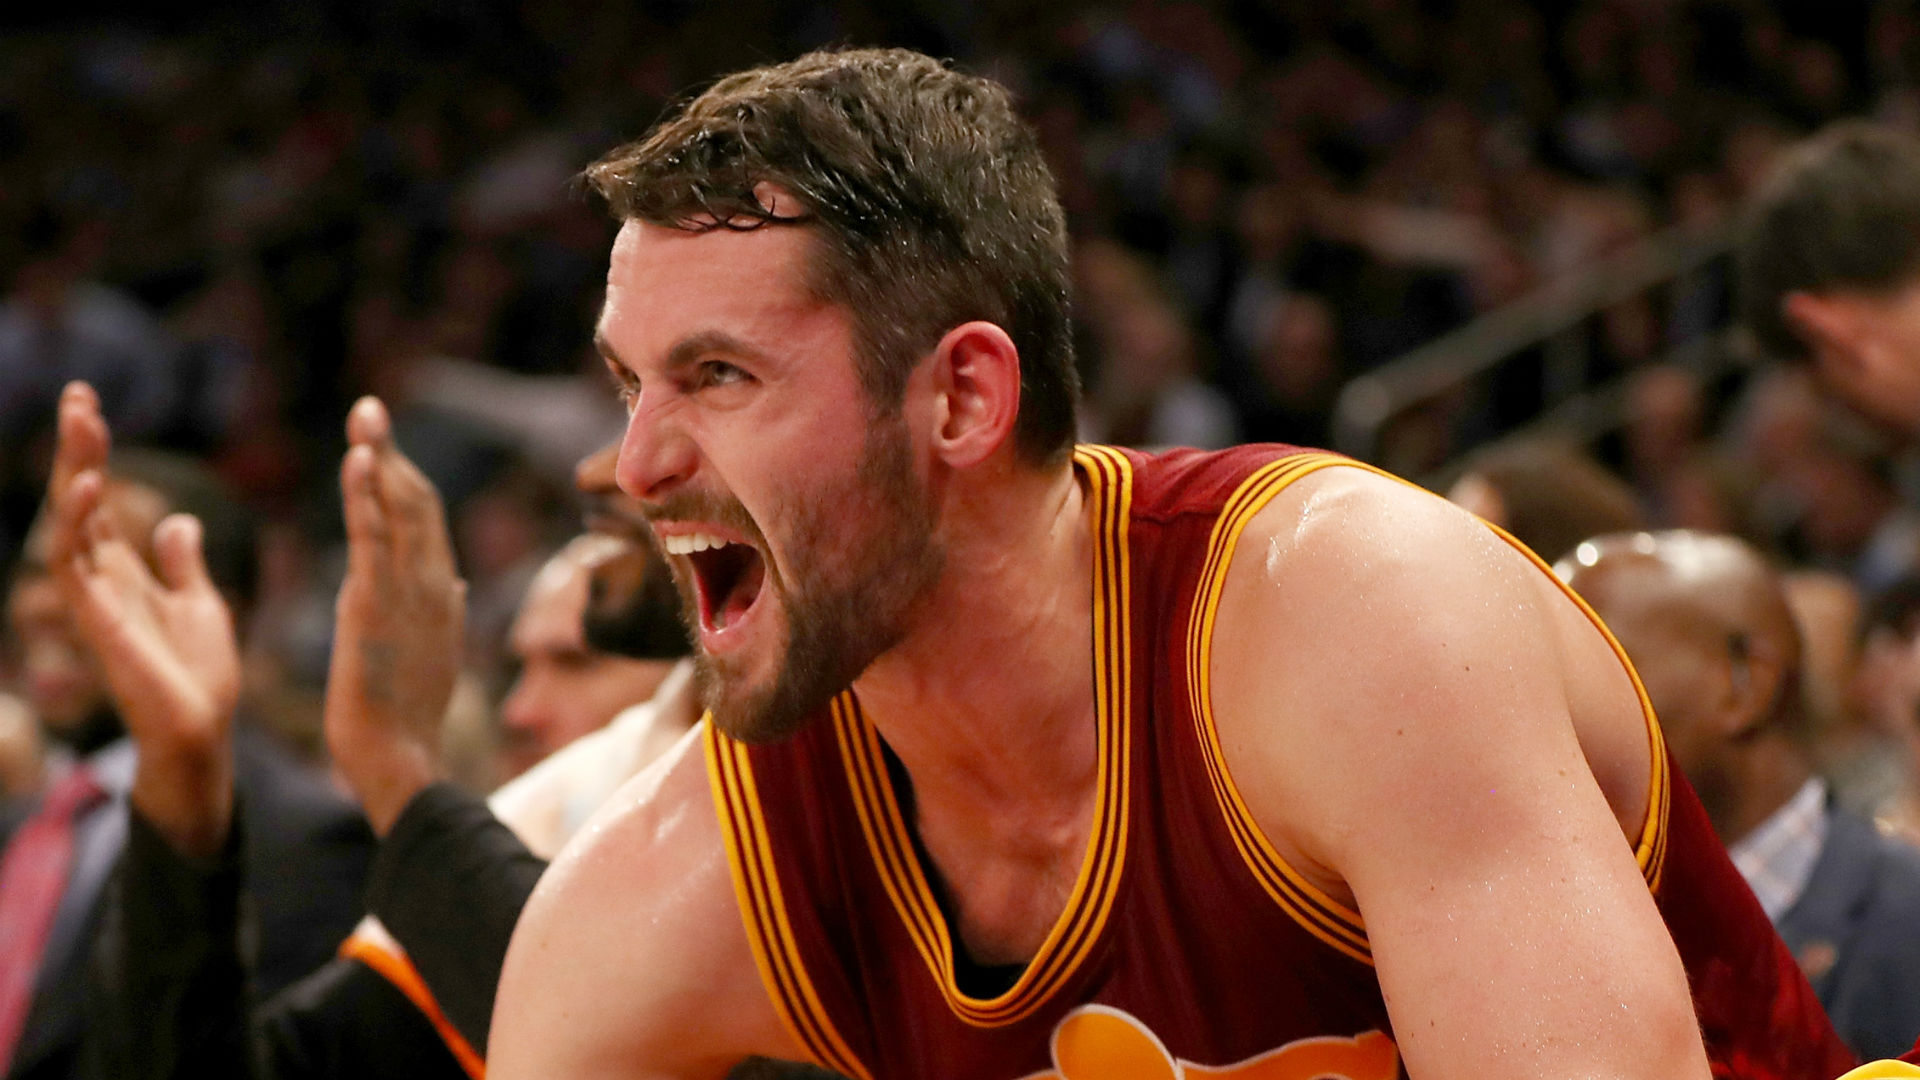 NBA free agency rumors: Cavs sign Kevin Love to lucrative 4-year extension